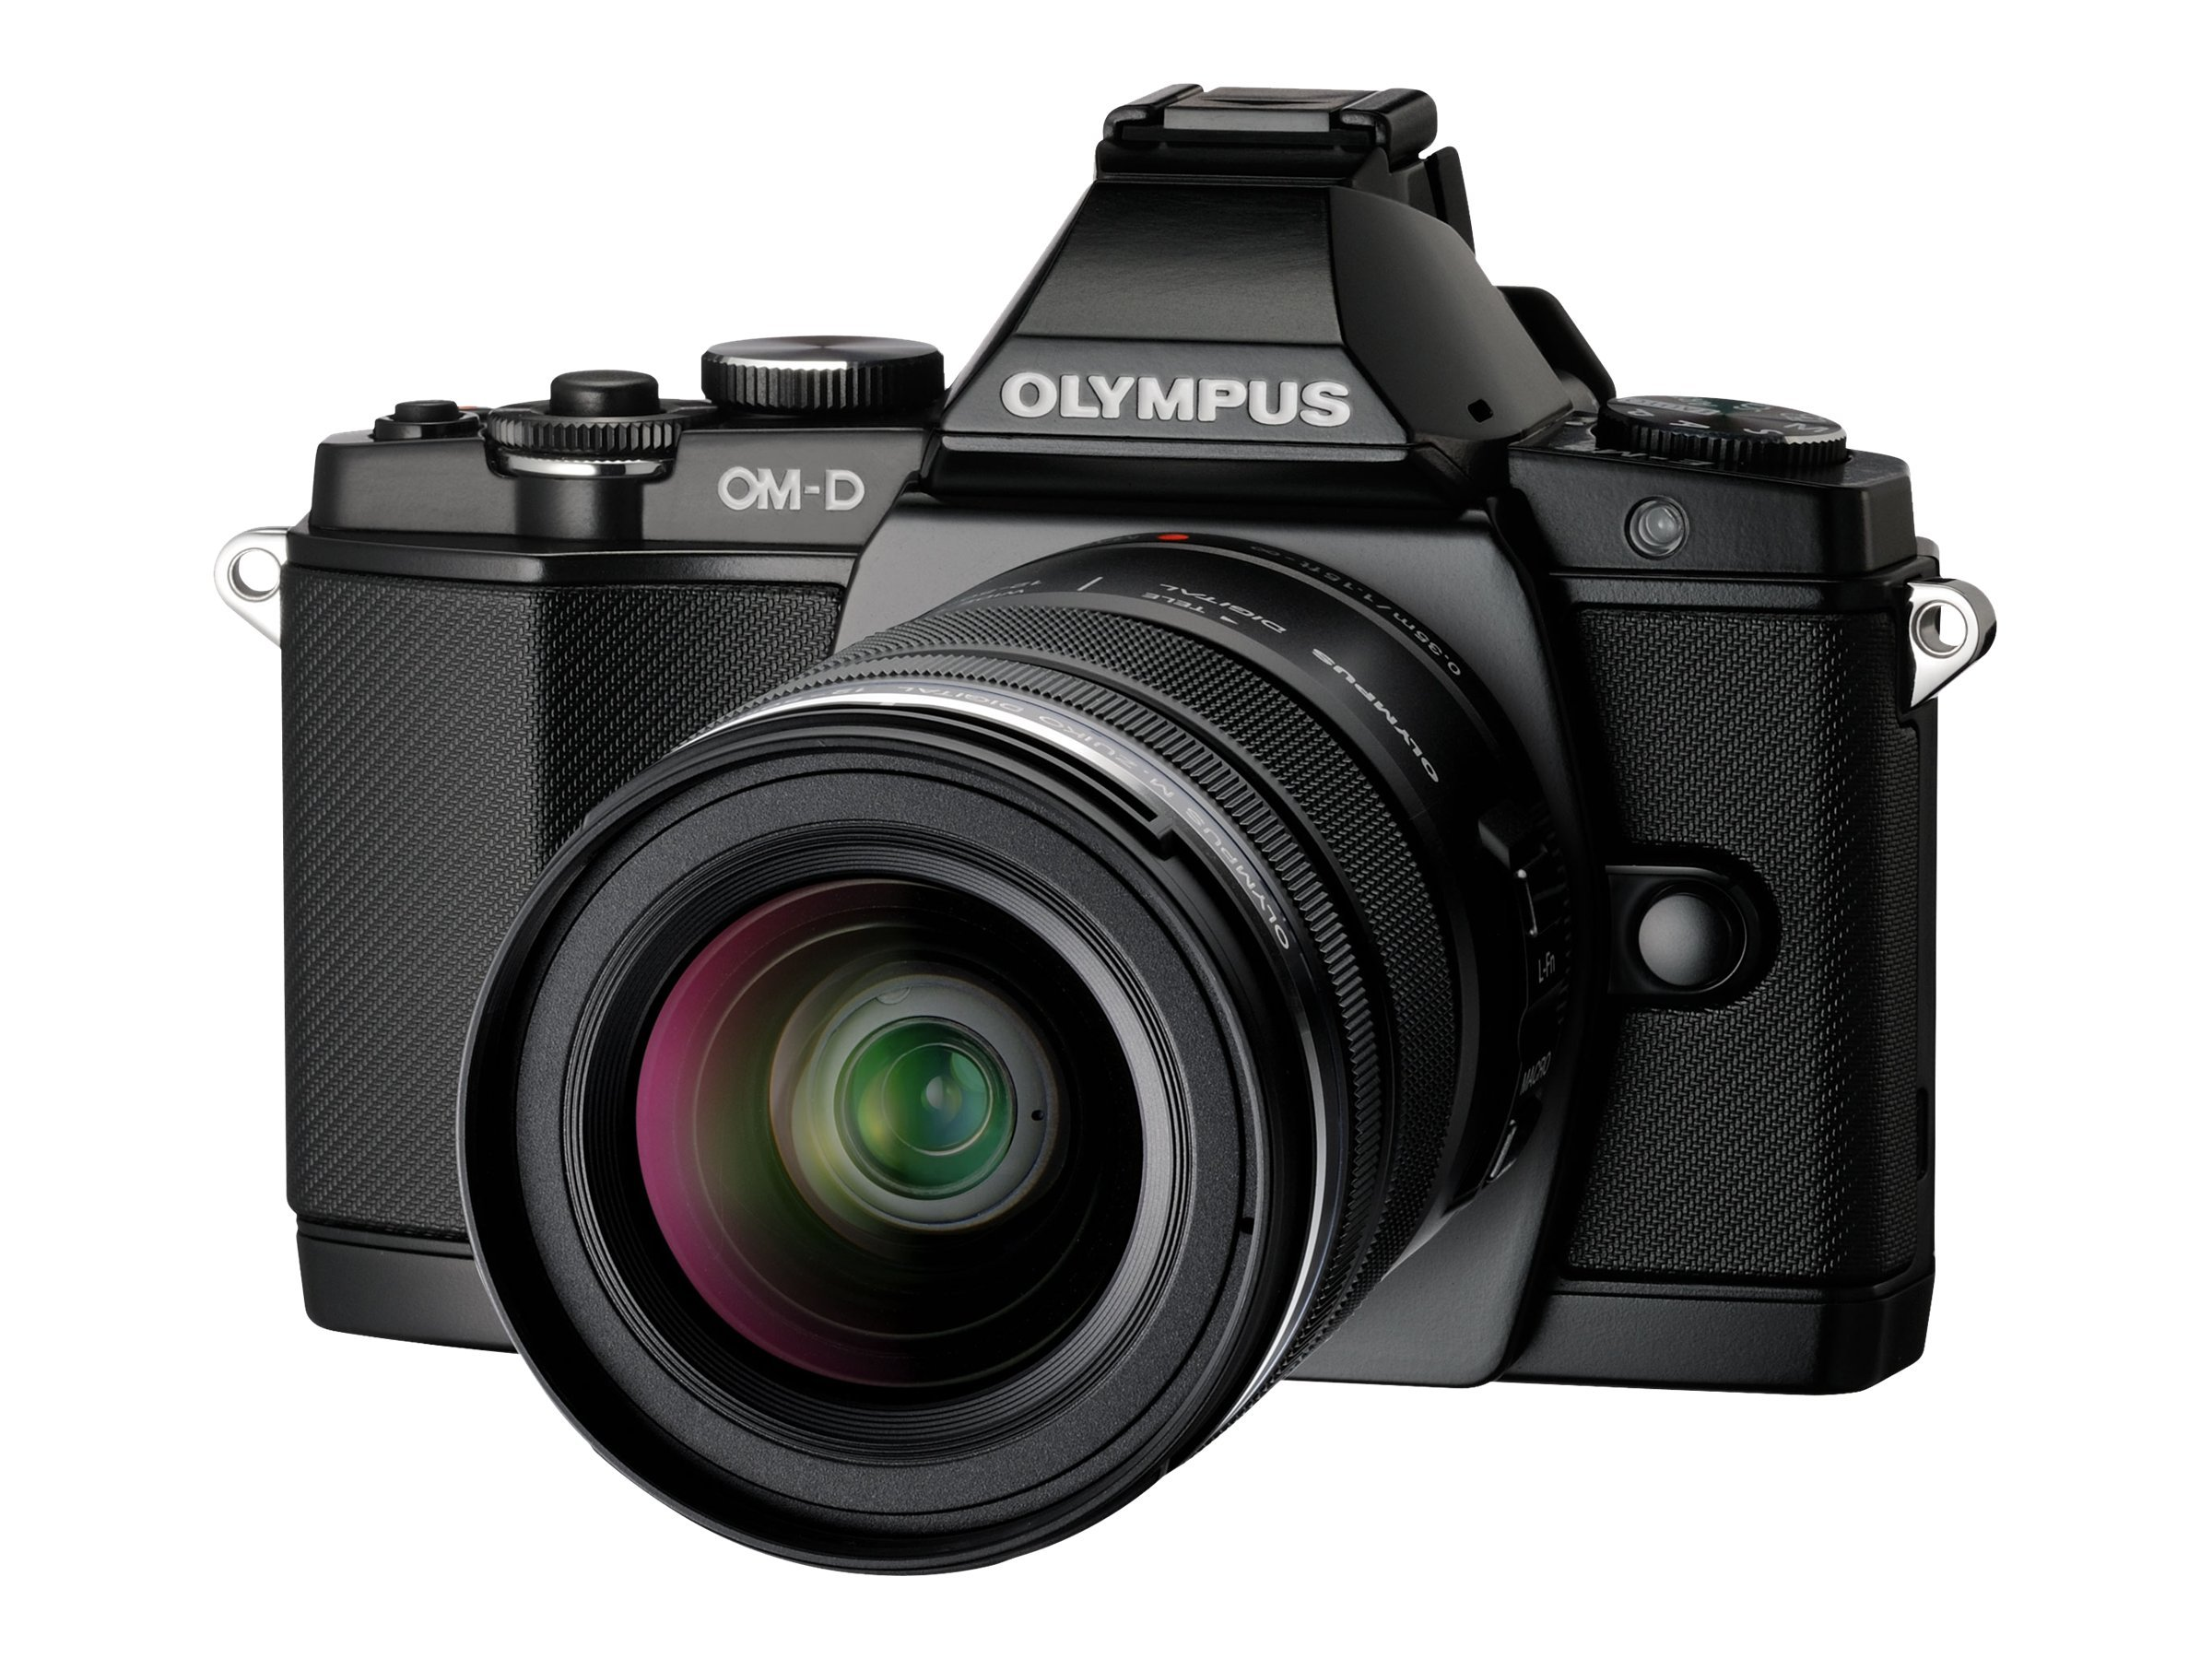 Olympus OM-D E-M5 Micro Four Thirds Digital Camera with 14-42mm Lens, Black, V204041BU000, 13819912, Cameras - Digital